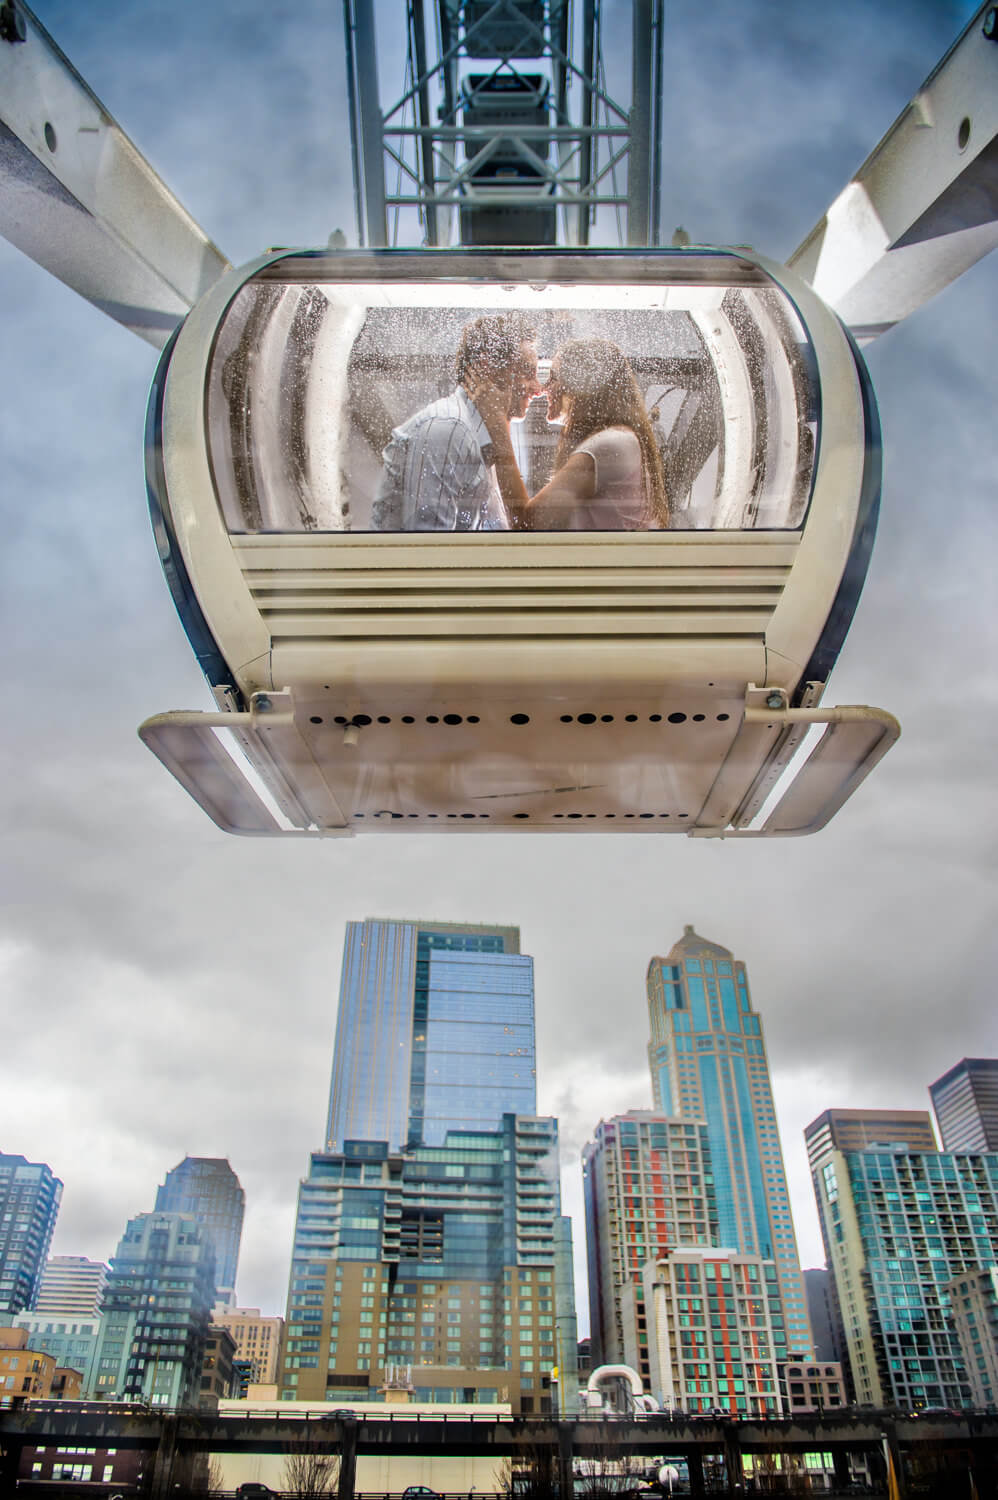 Engagement photos in Seattle's Great Wheel